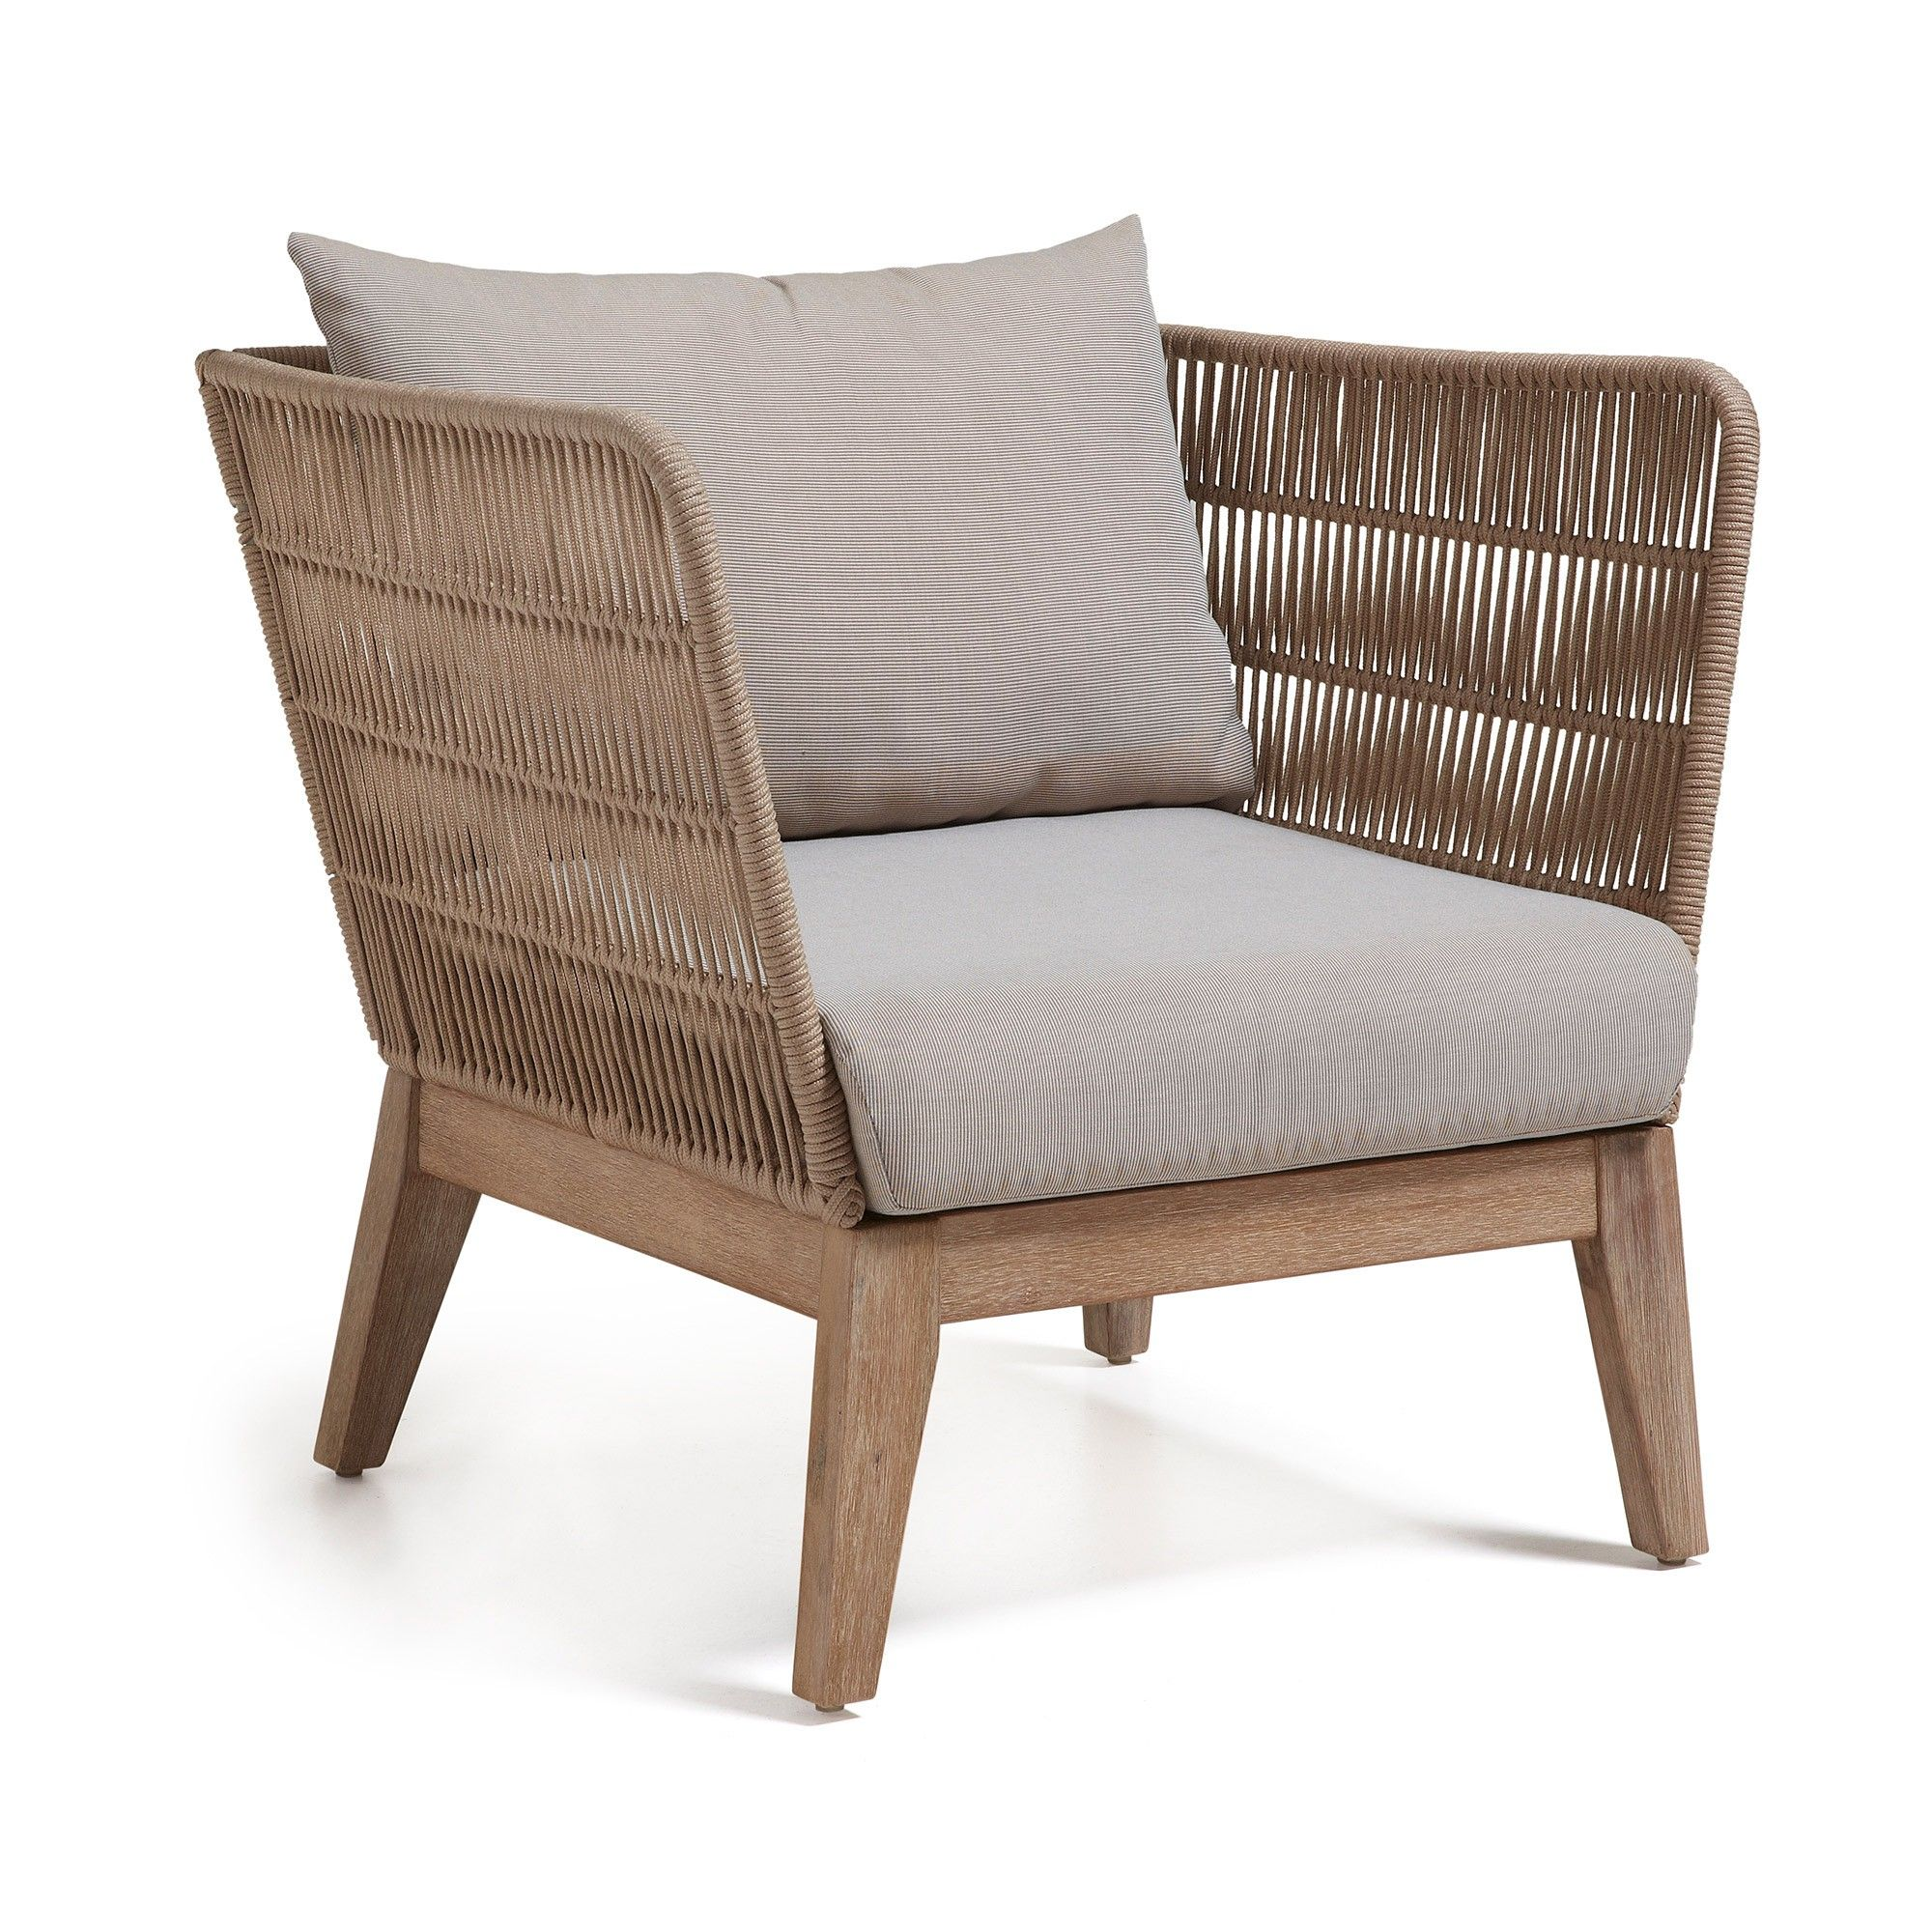 Outdoor Furniture Affordable: Outdoor Living Furniture, Outdoor